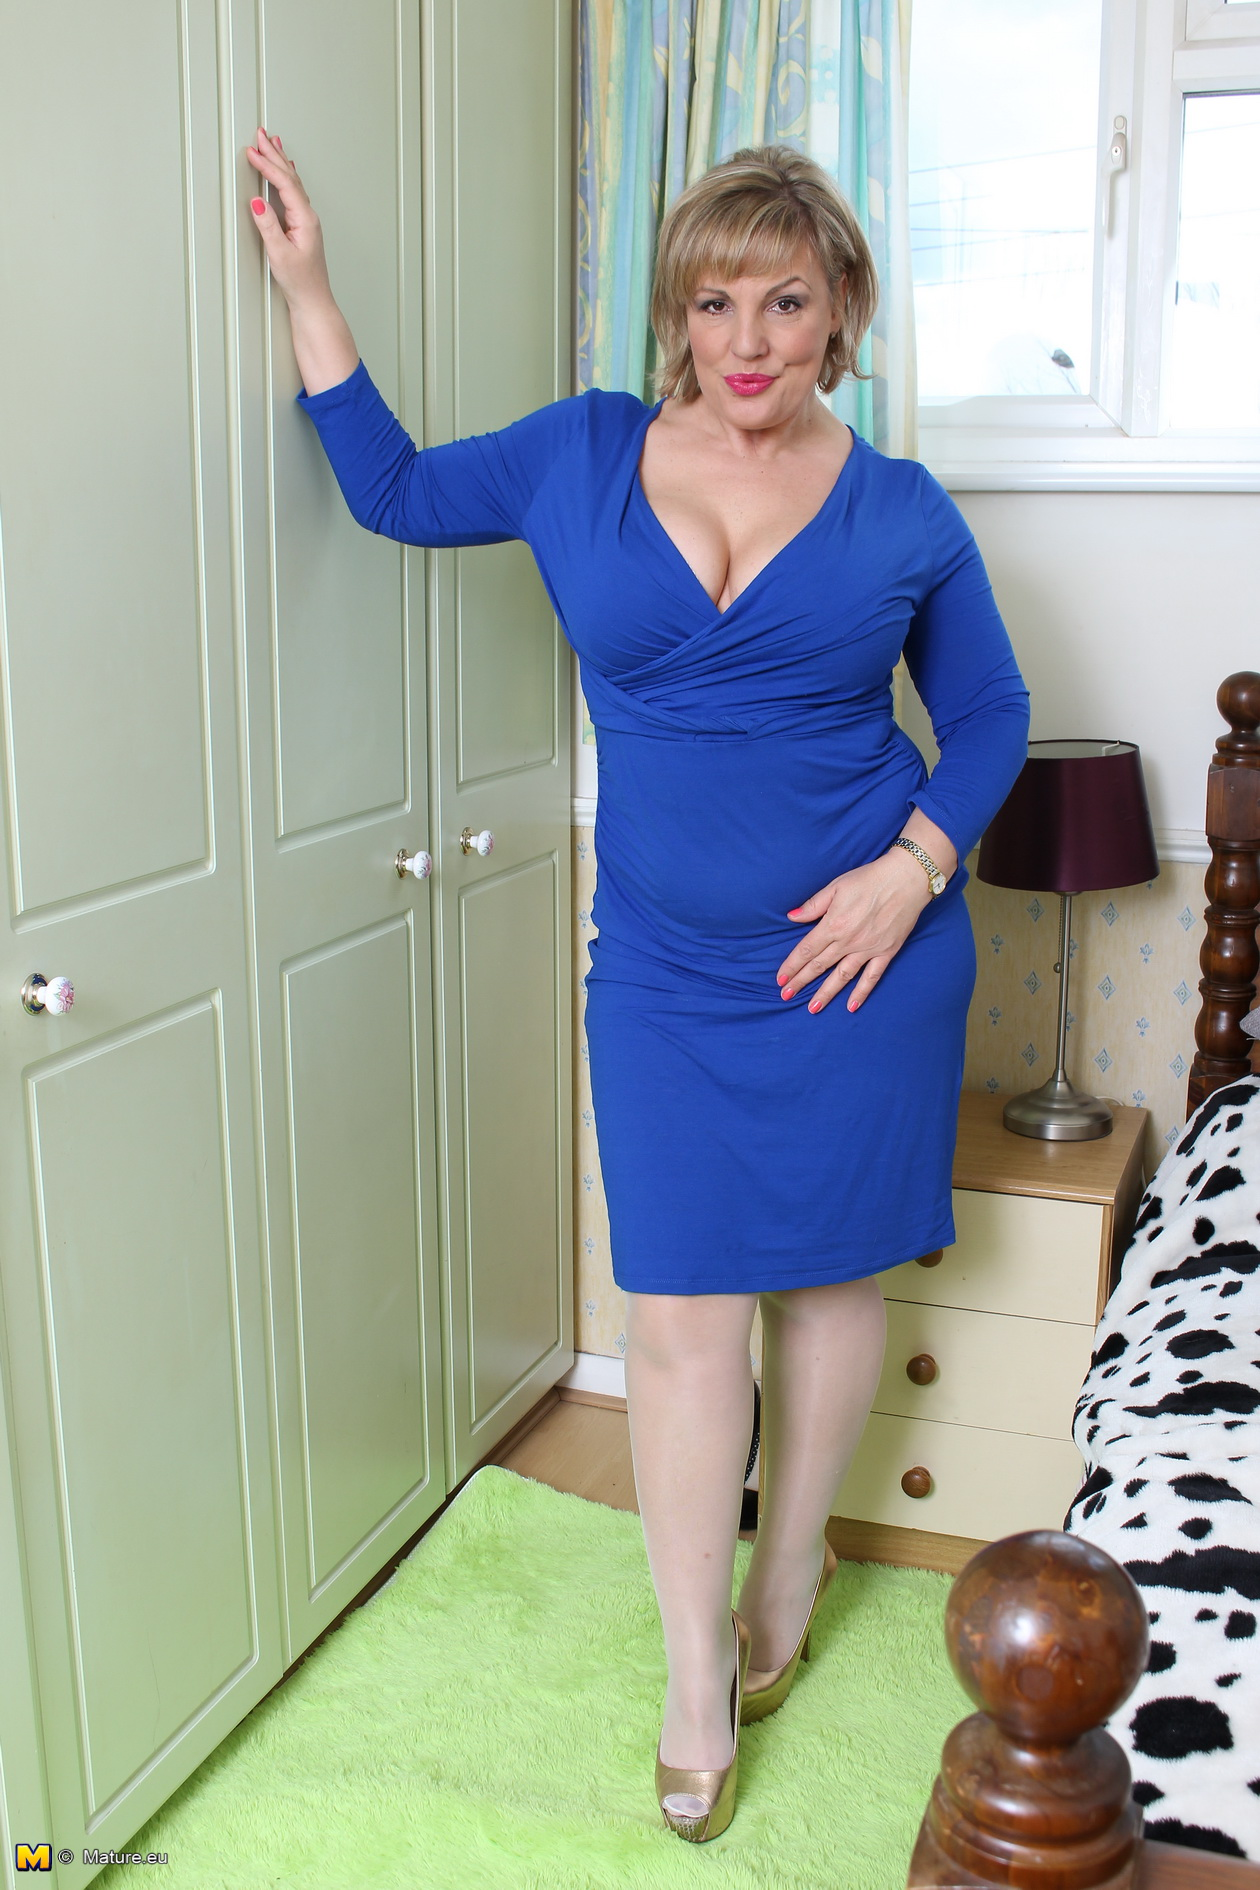 mature pivs - find your soul mate on our website.